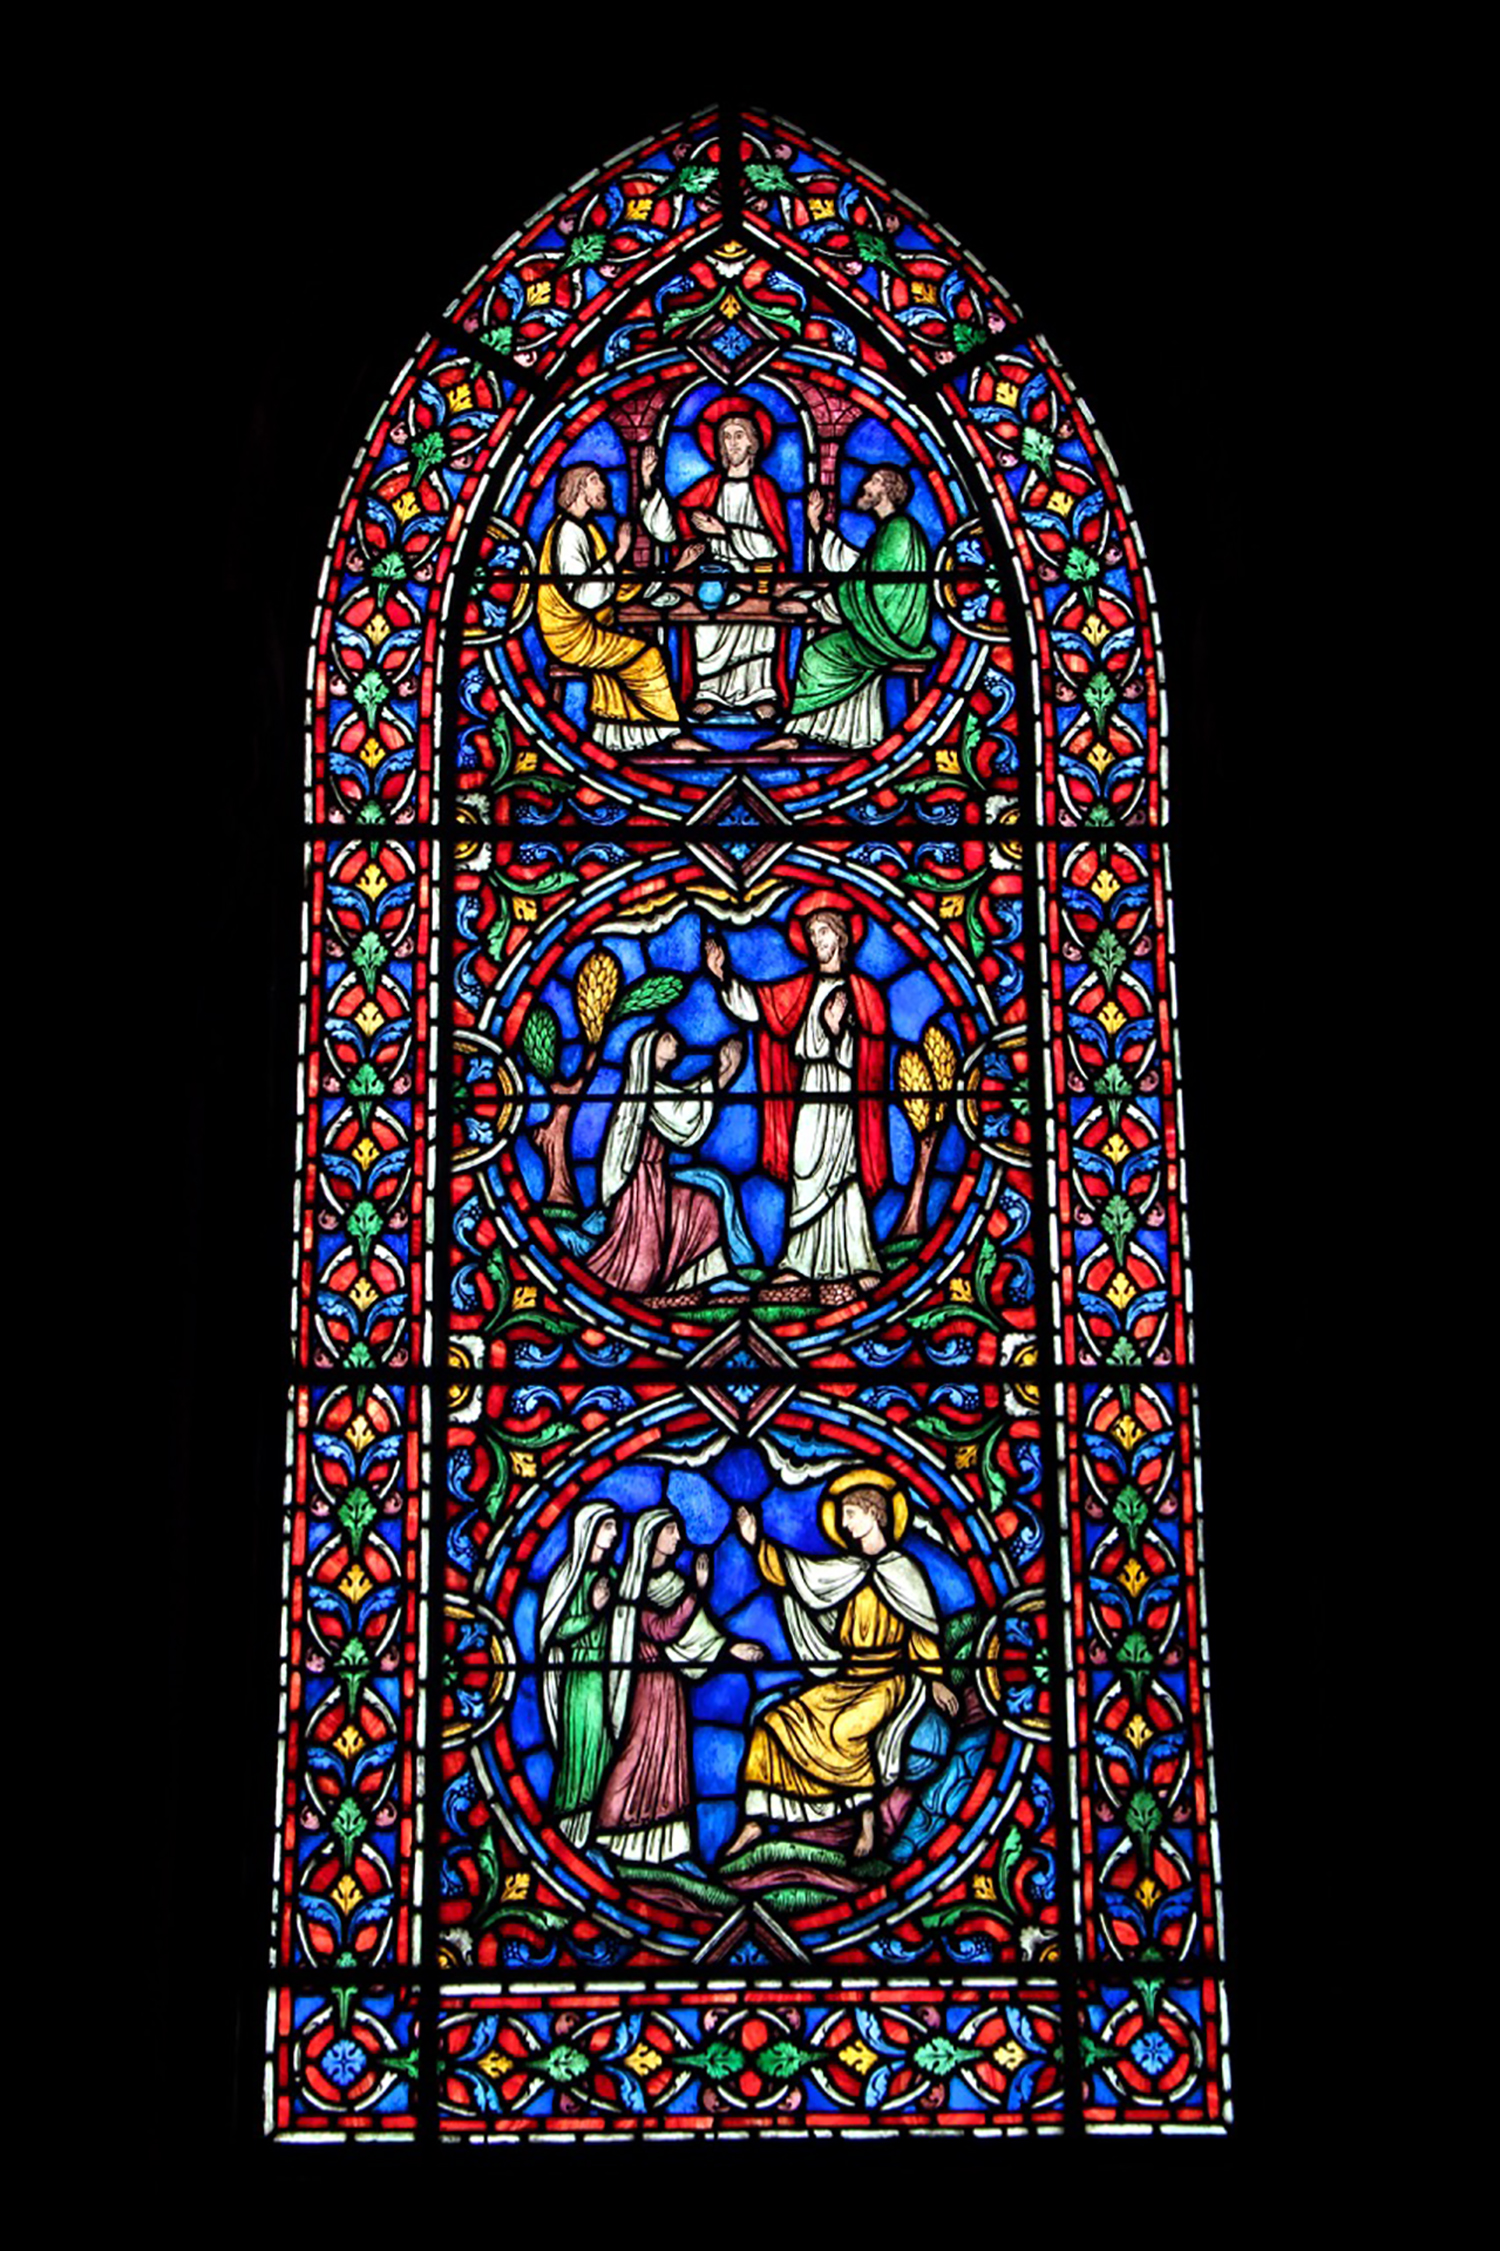 Figure 16: The north window, an original design by Winfred Hyatt, shows scenes from the story of Christ's Resurrection.